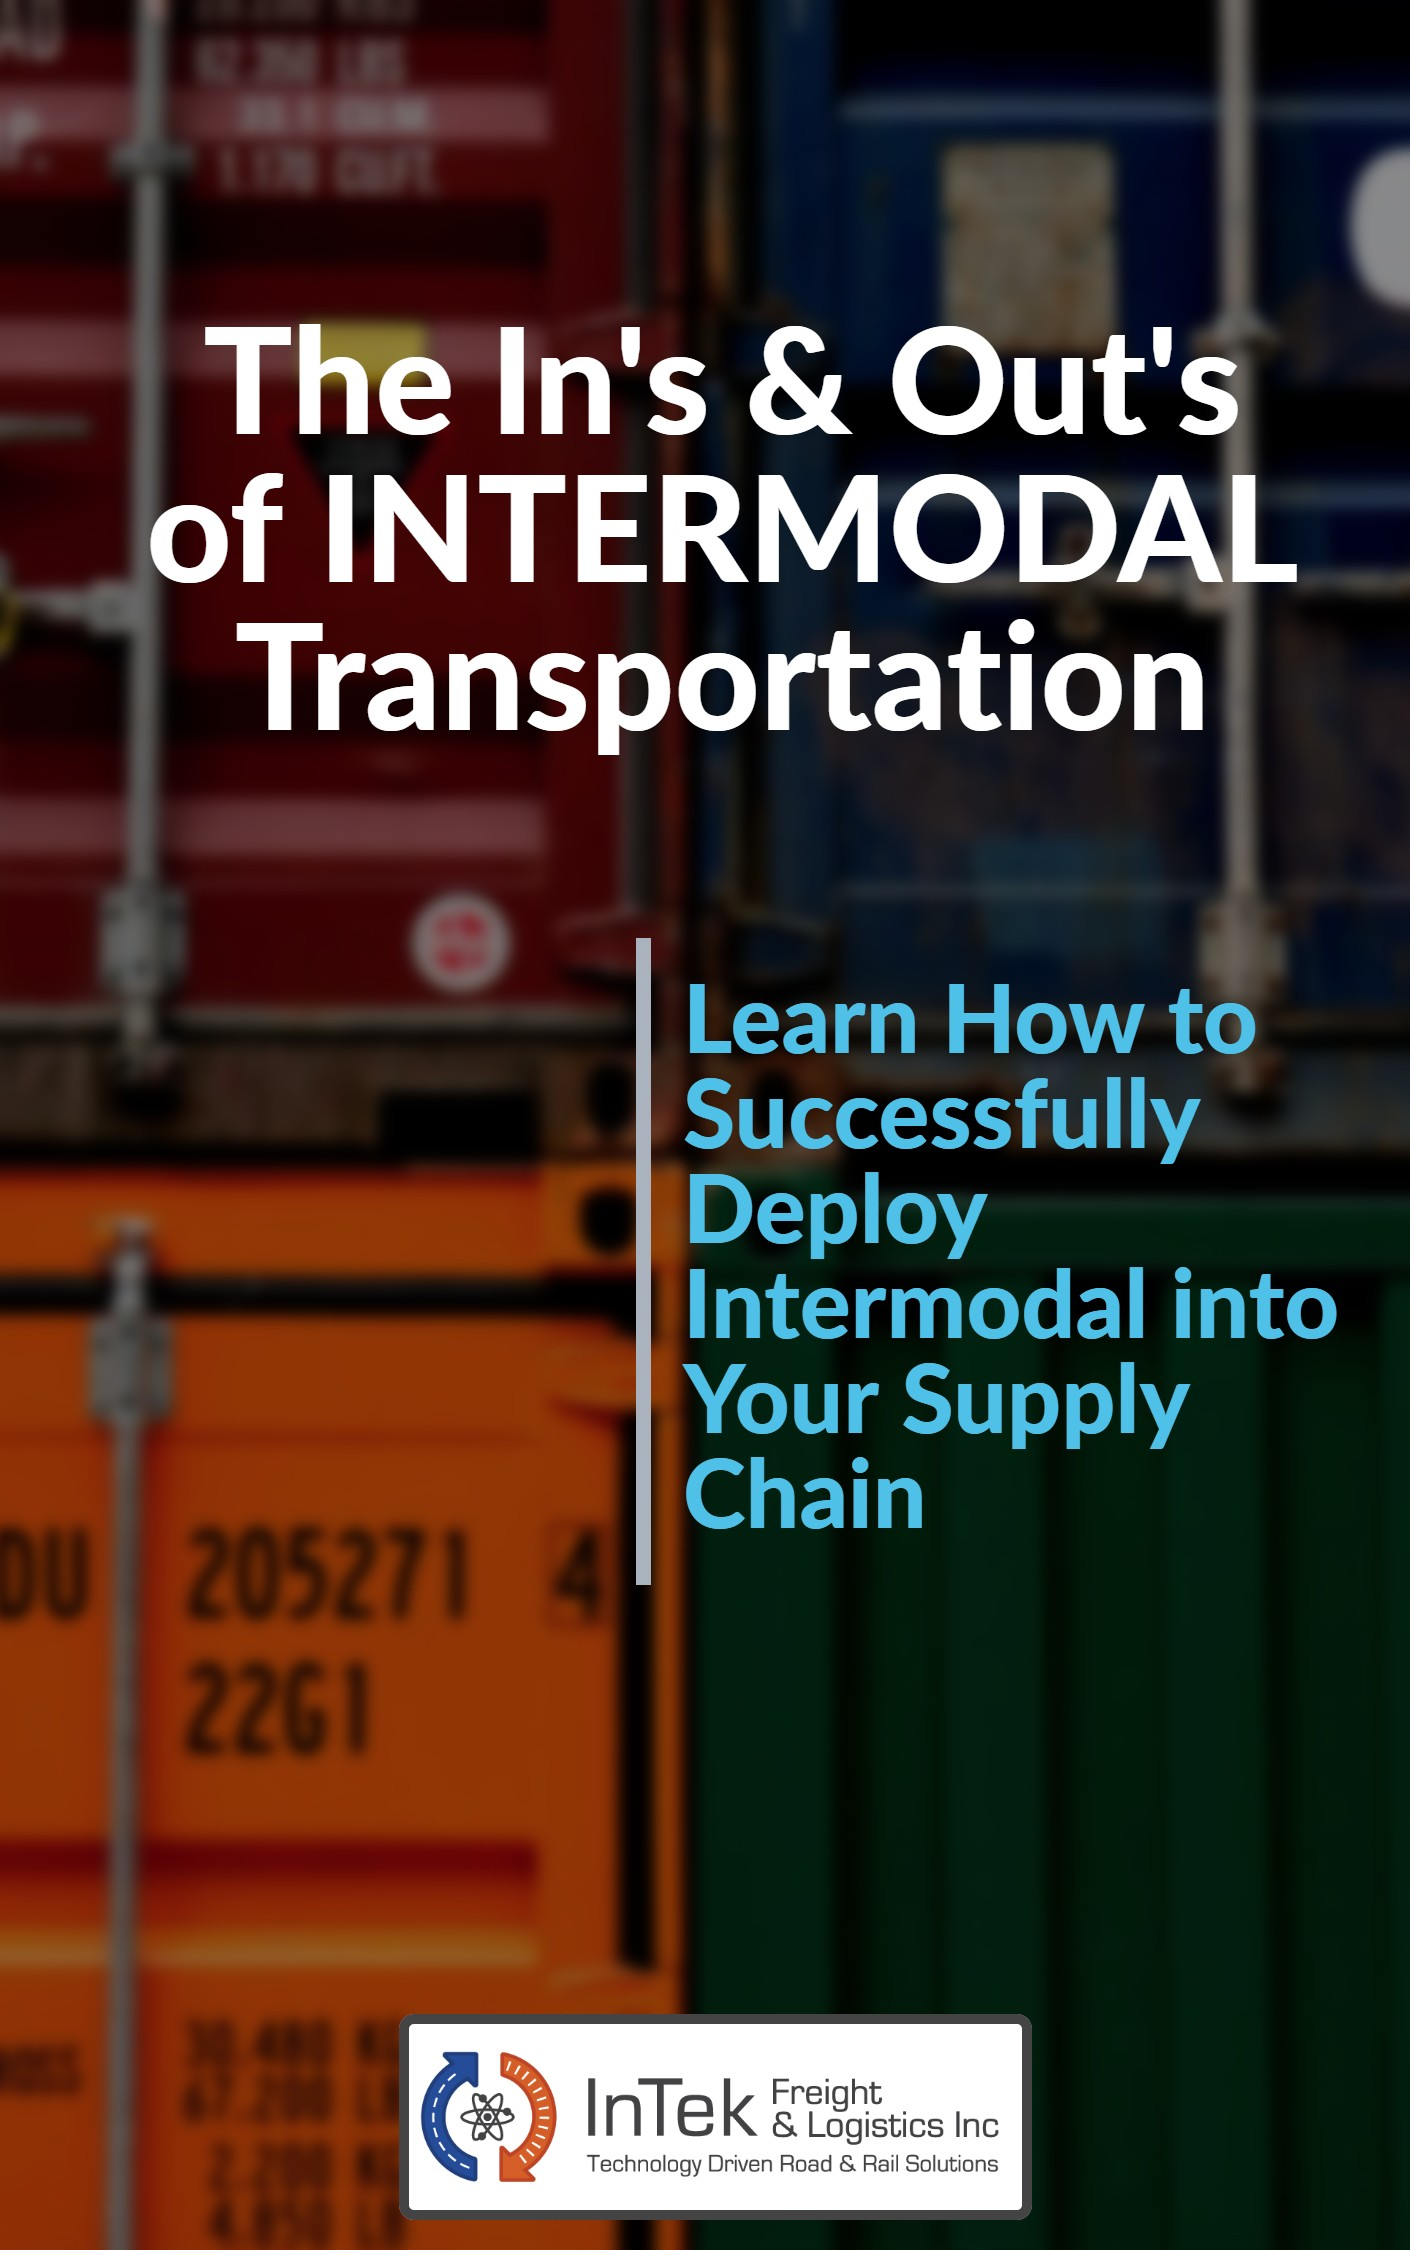 ins-and-outs-intermodal-transportation-cover